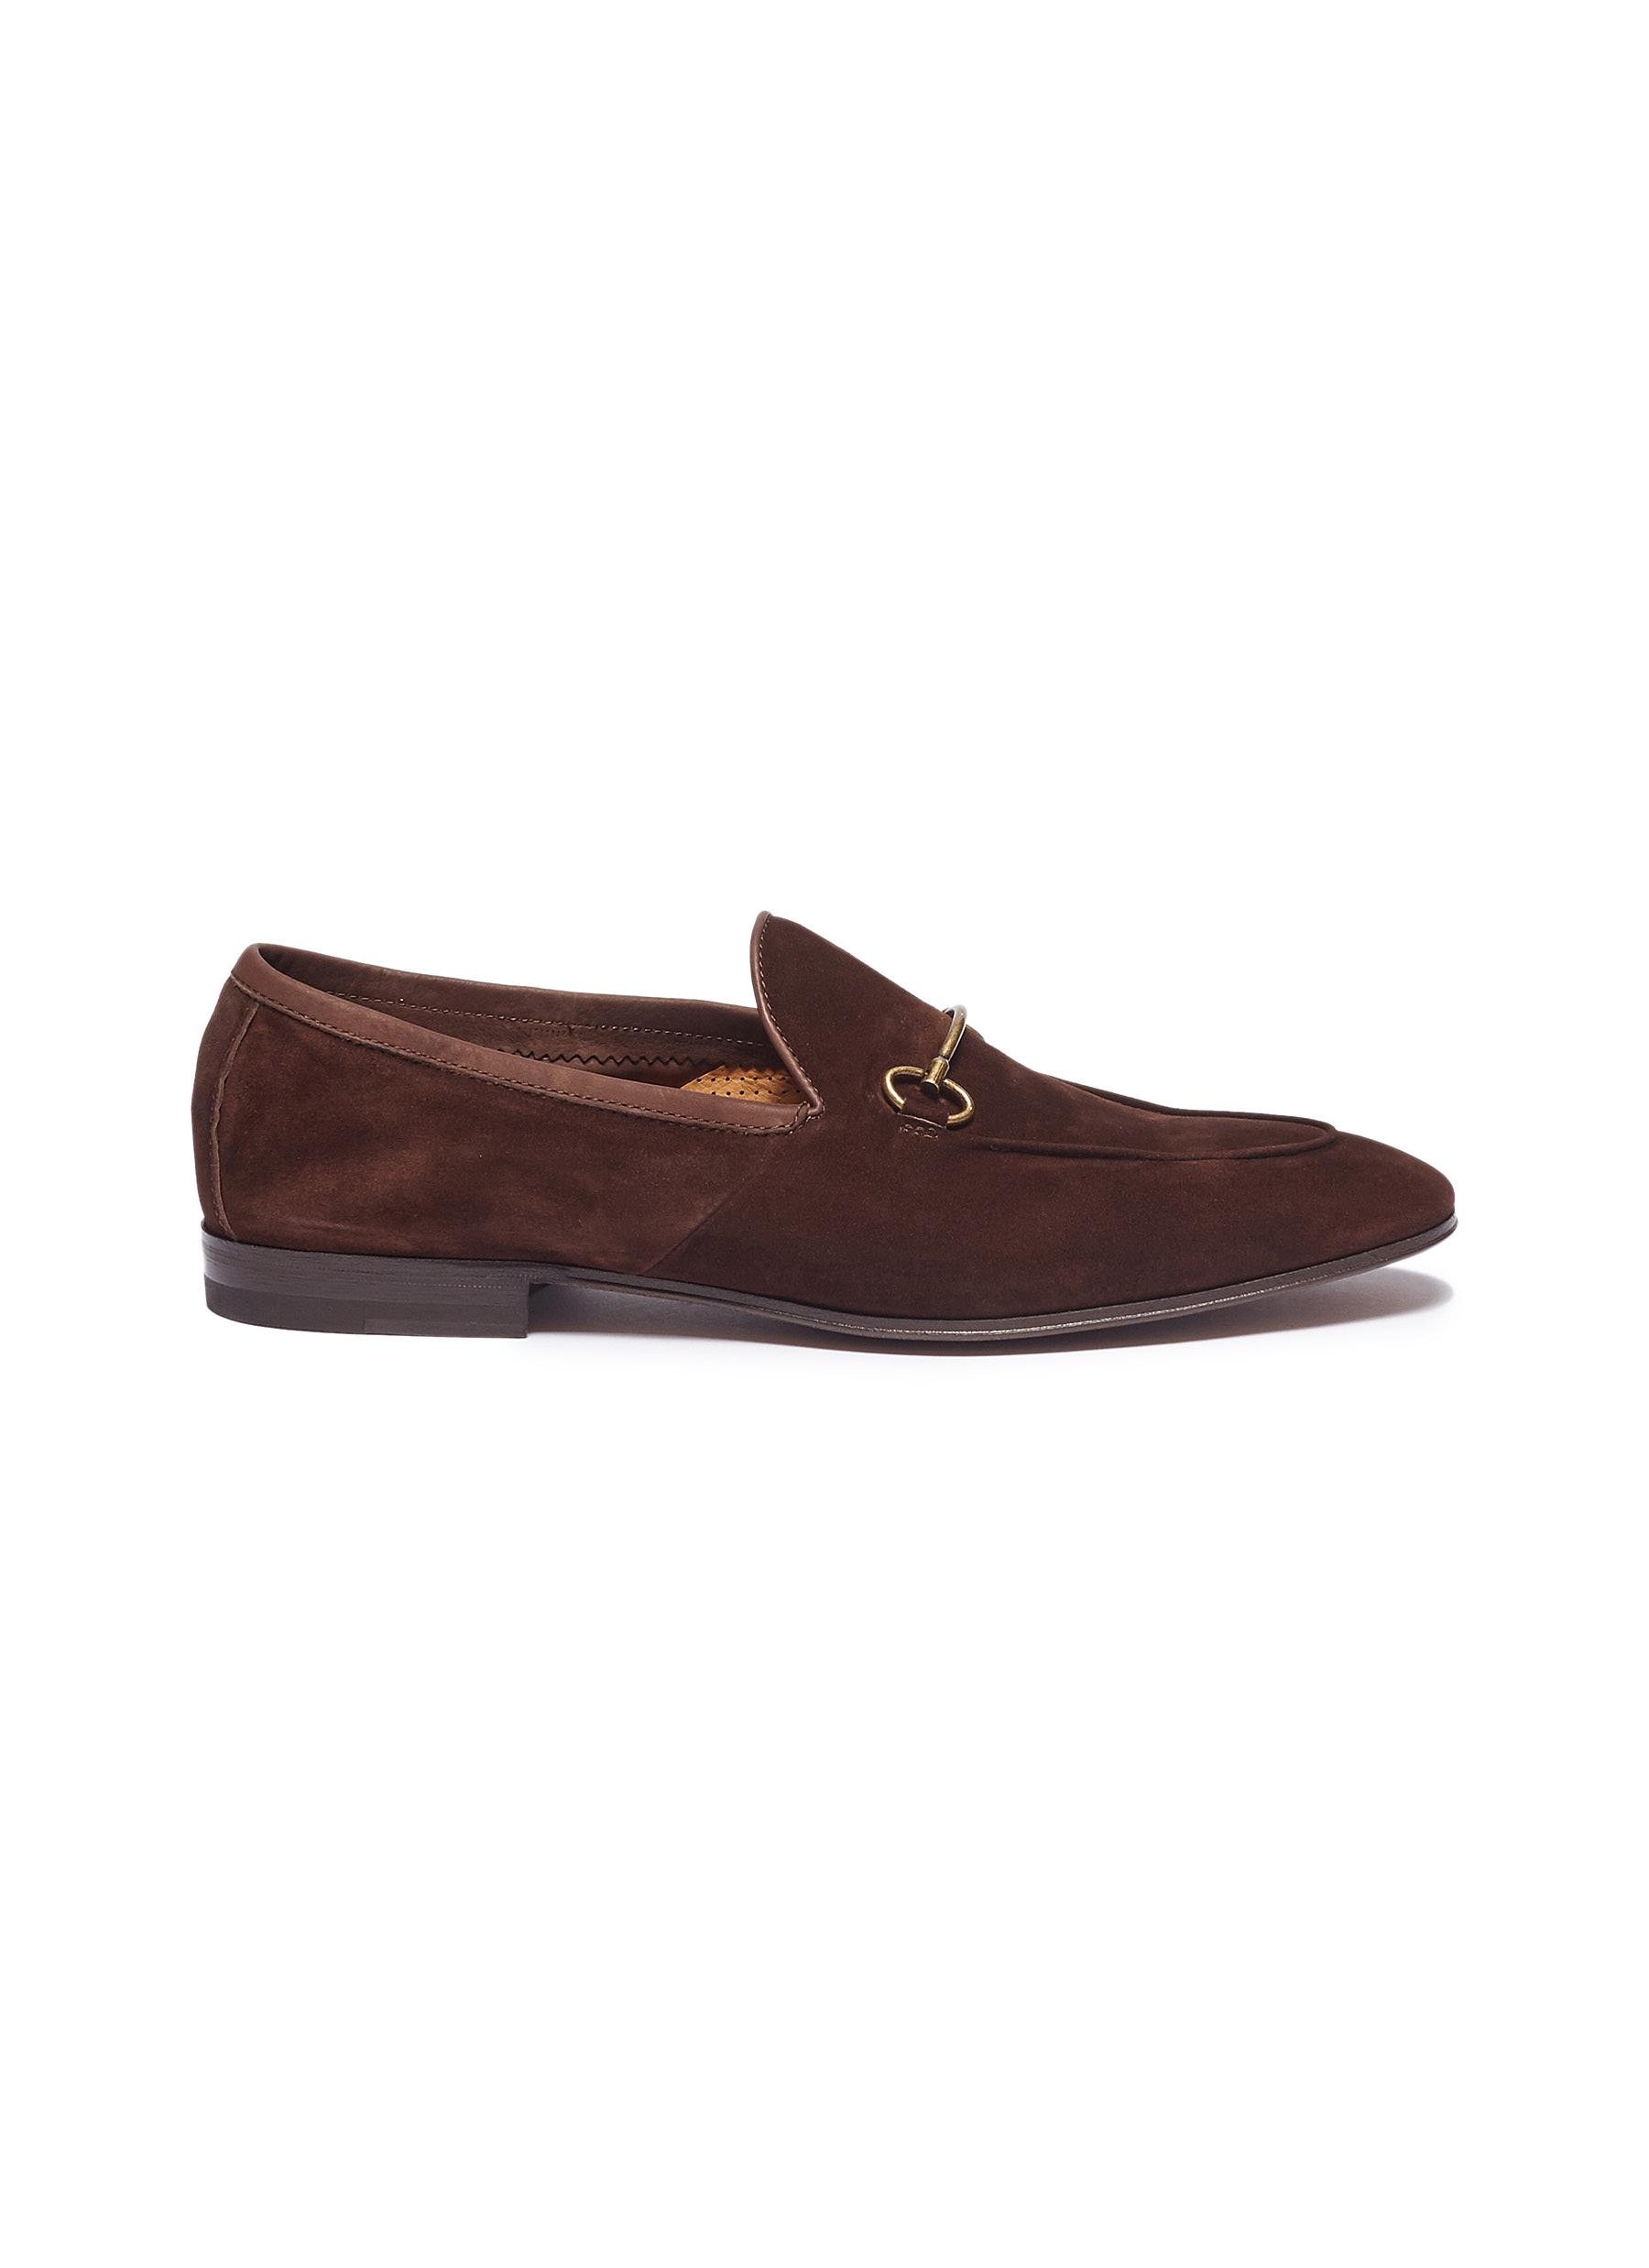 Horsebit suede loafers by Henderson